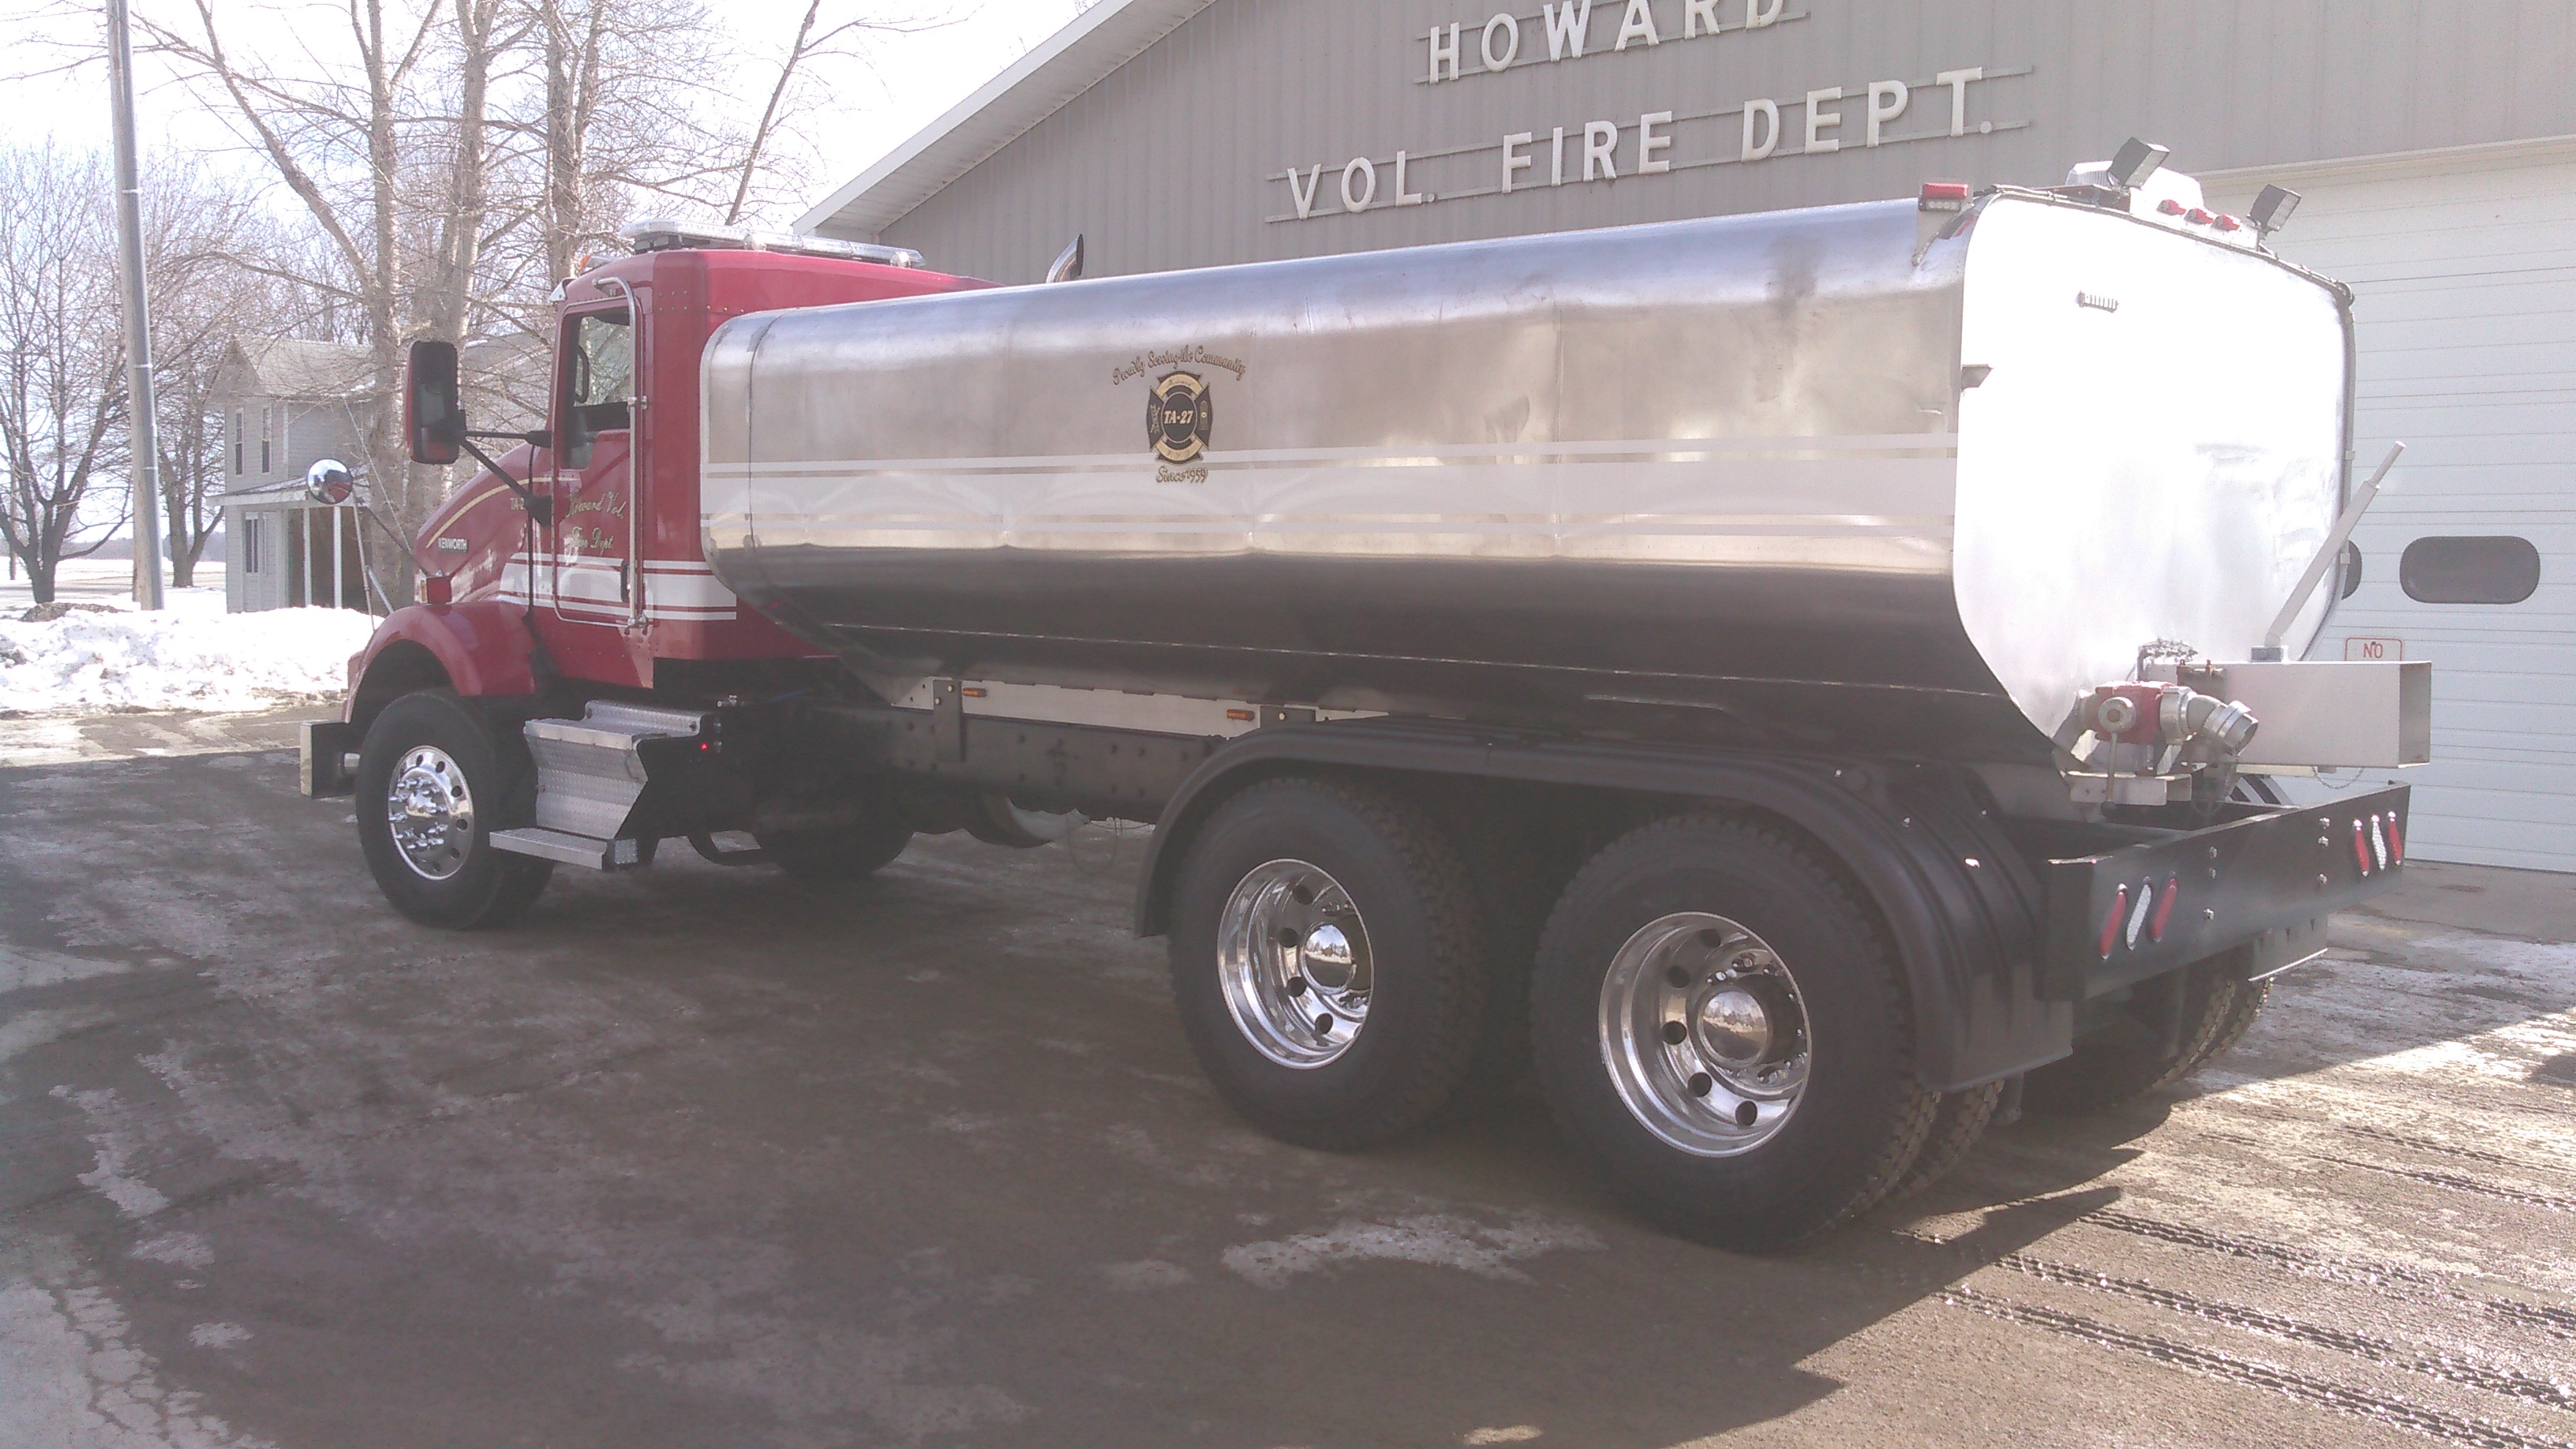 FTF-27 Fenders on Howard Volunteer Fire Department Tanker